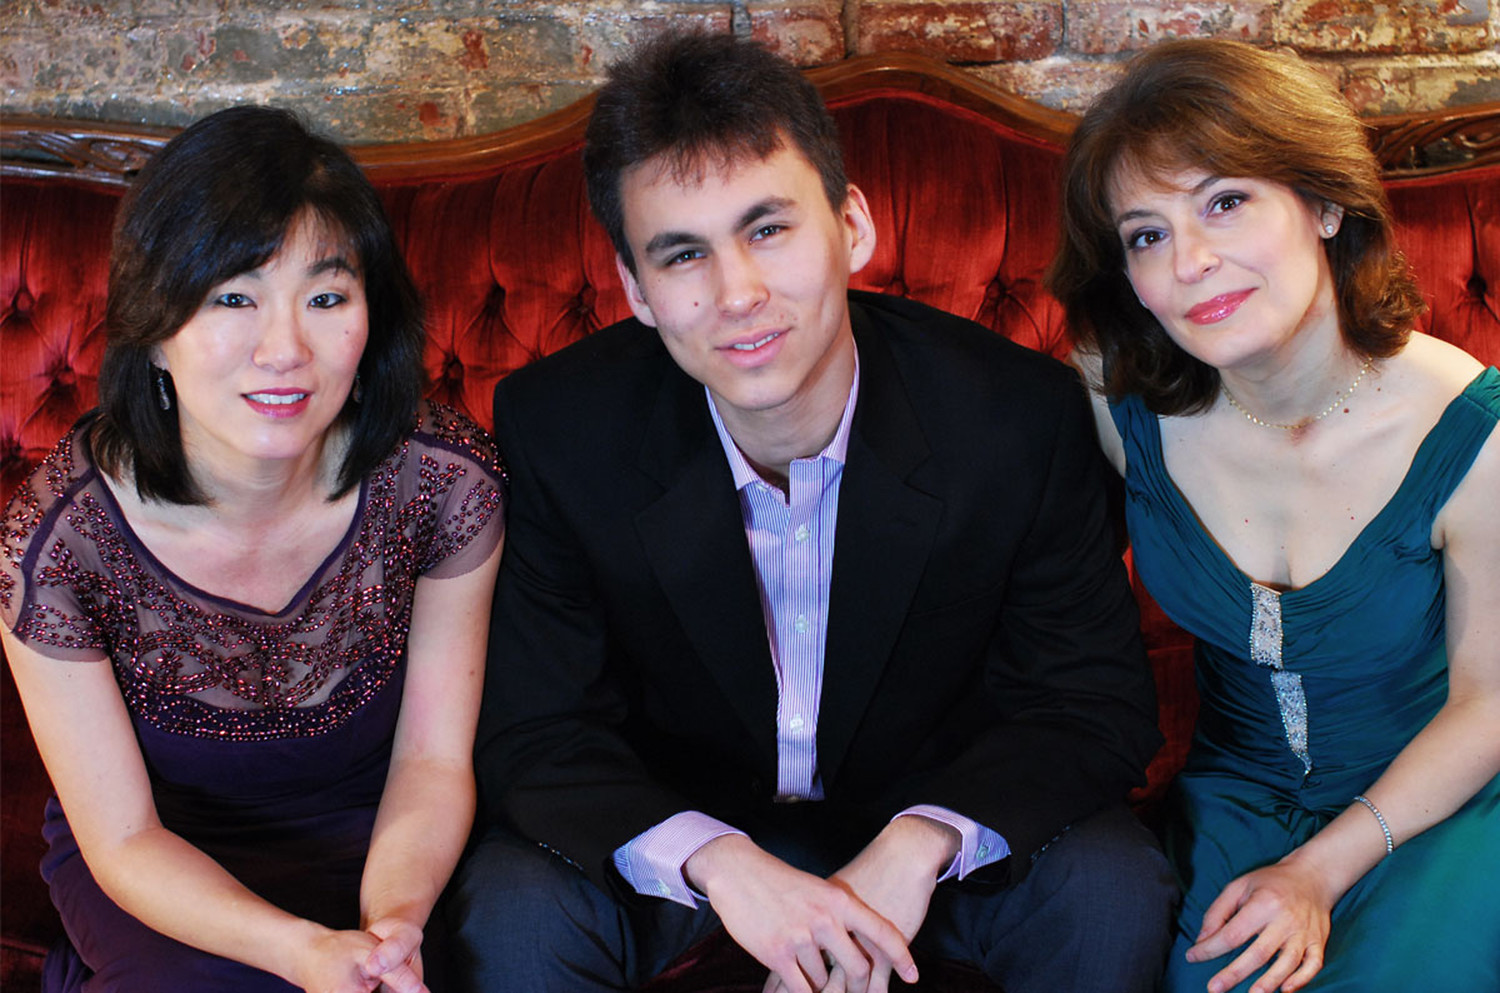 The Boston Trio performs in the Arts in the Village Concert Series on February 24. Photo: Becca Lewis